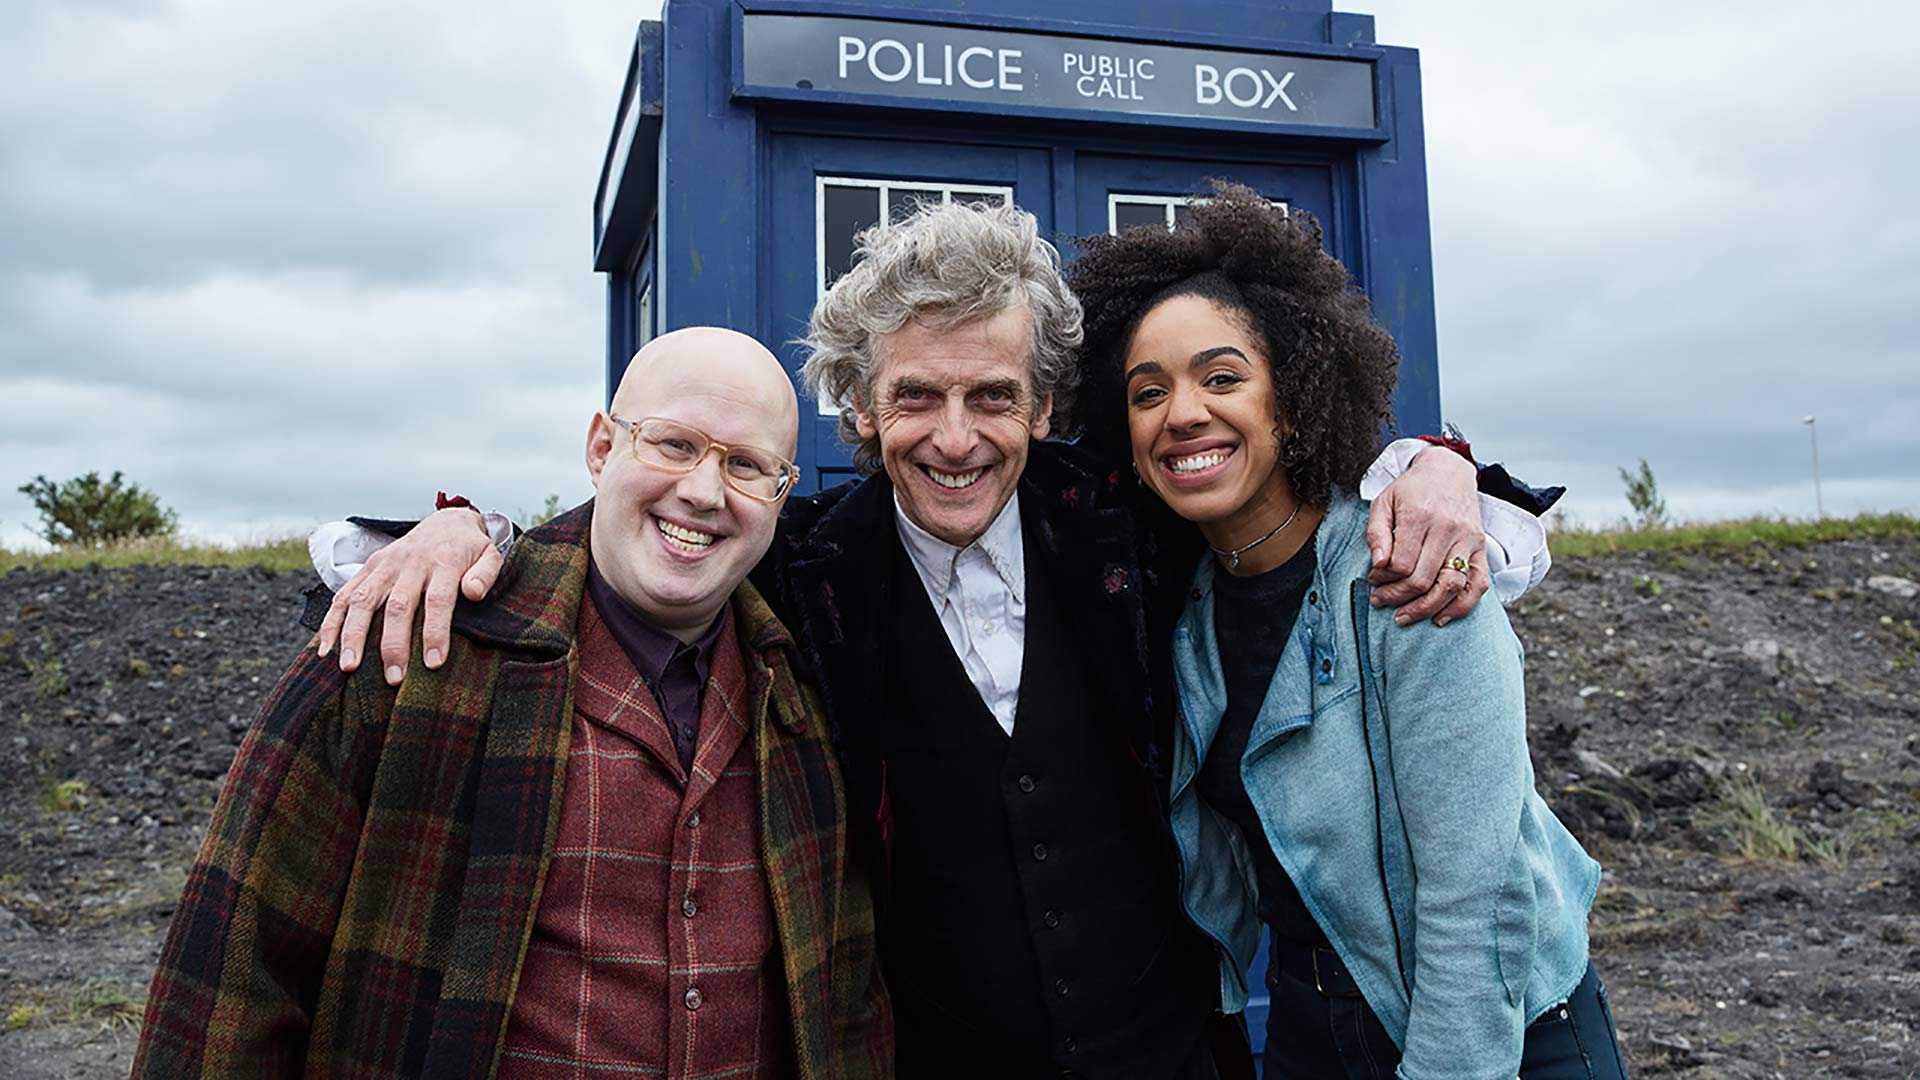 The cast of Dr. Who